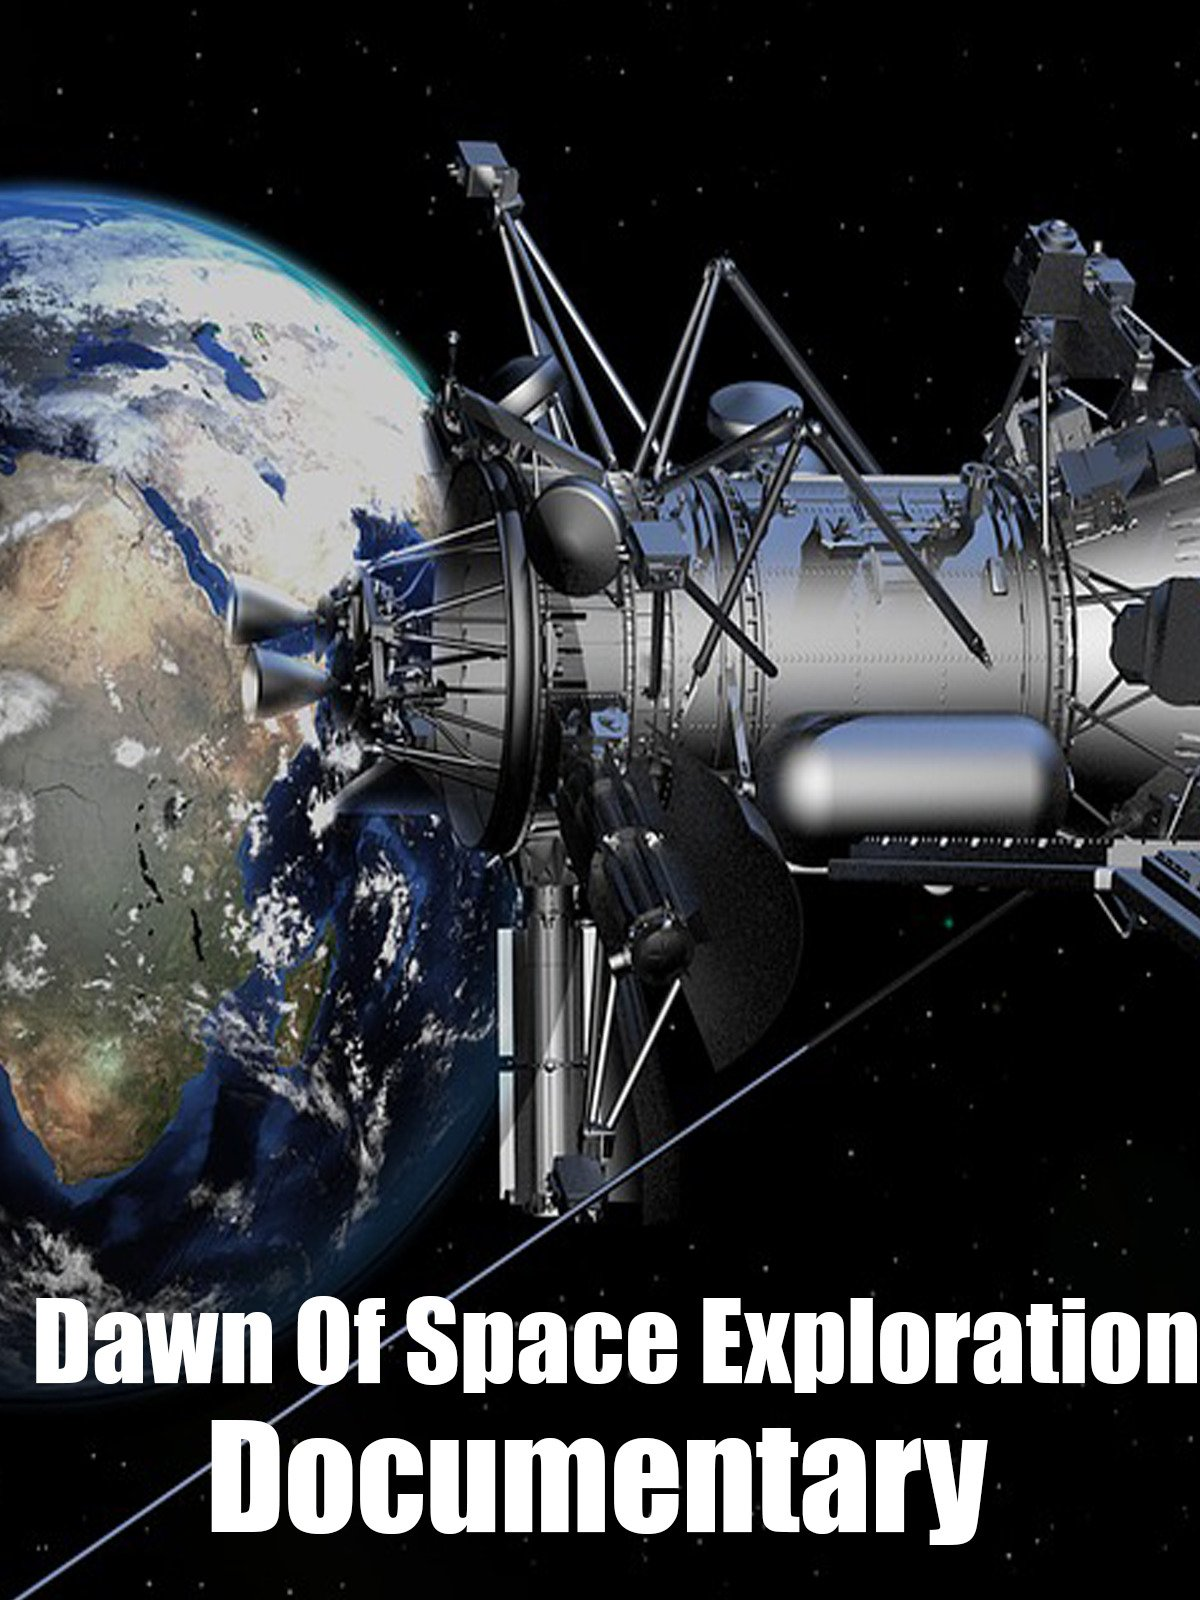 Dawn of space exploration: Documentary